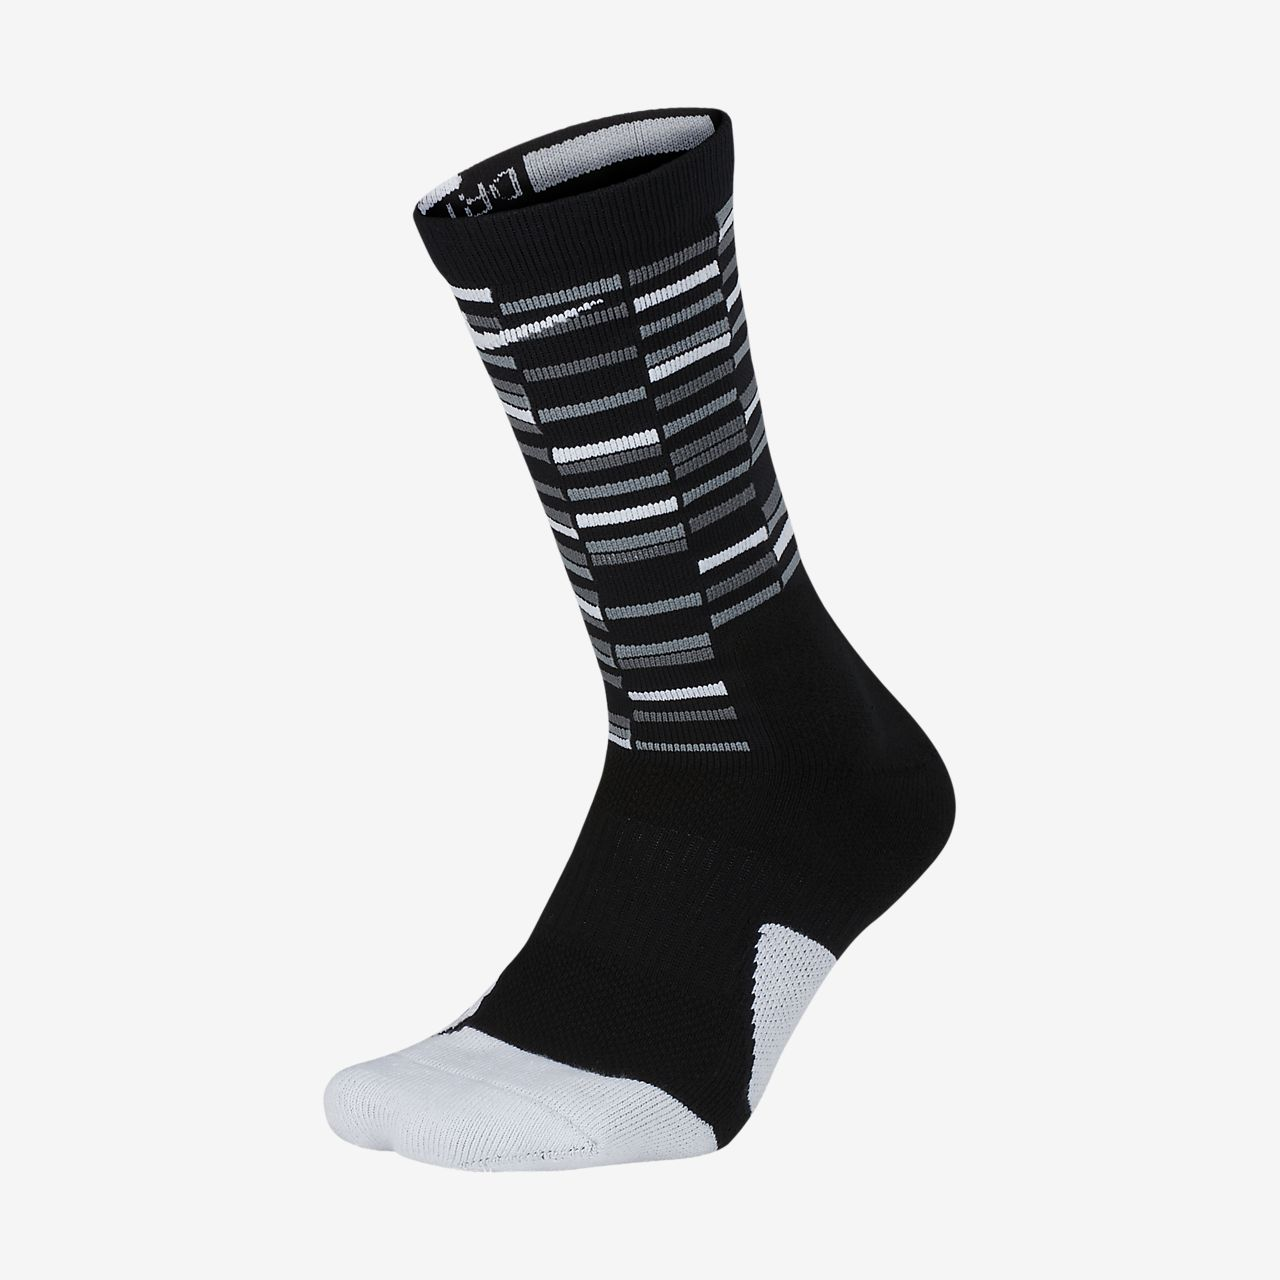 low priced d2476 a7b58 Calcetines de básquetbol Nike Elite Crew. Nike.com CL